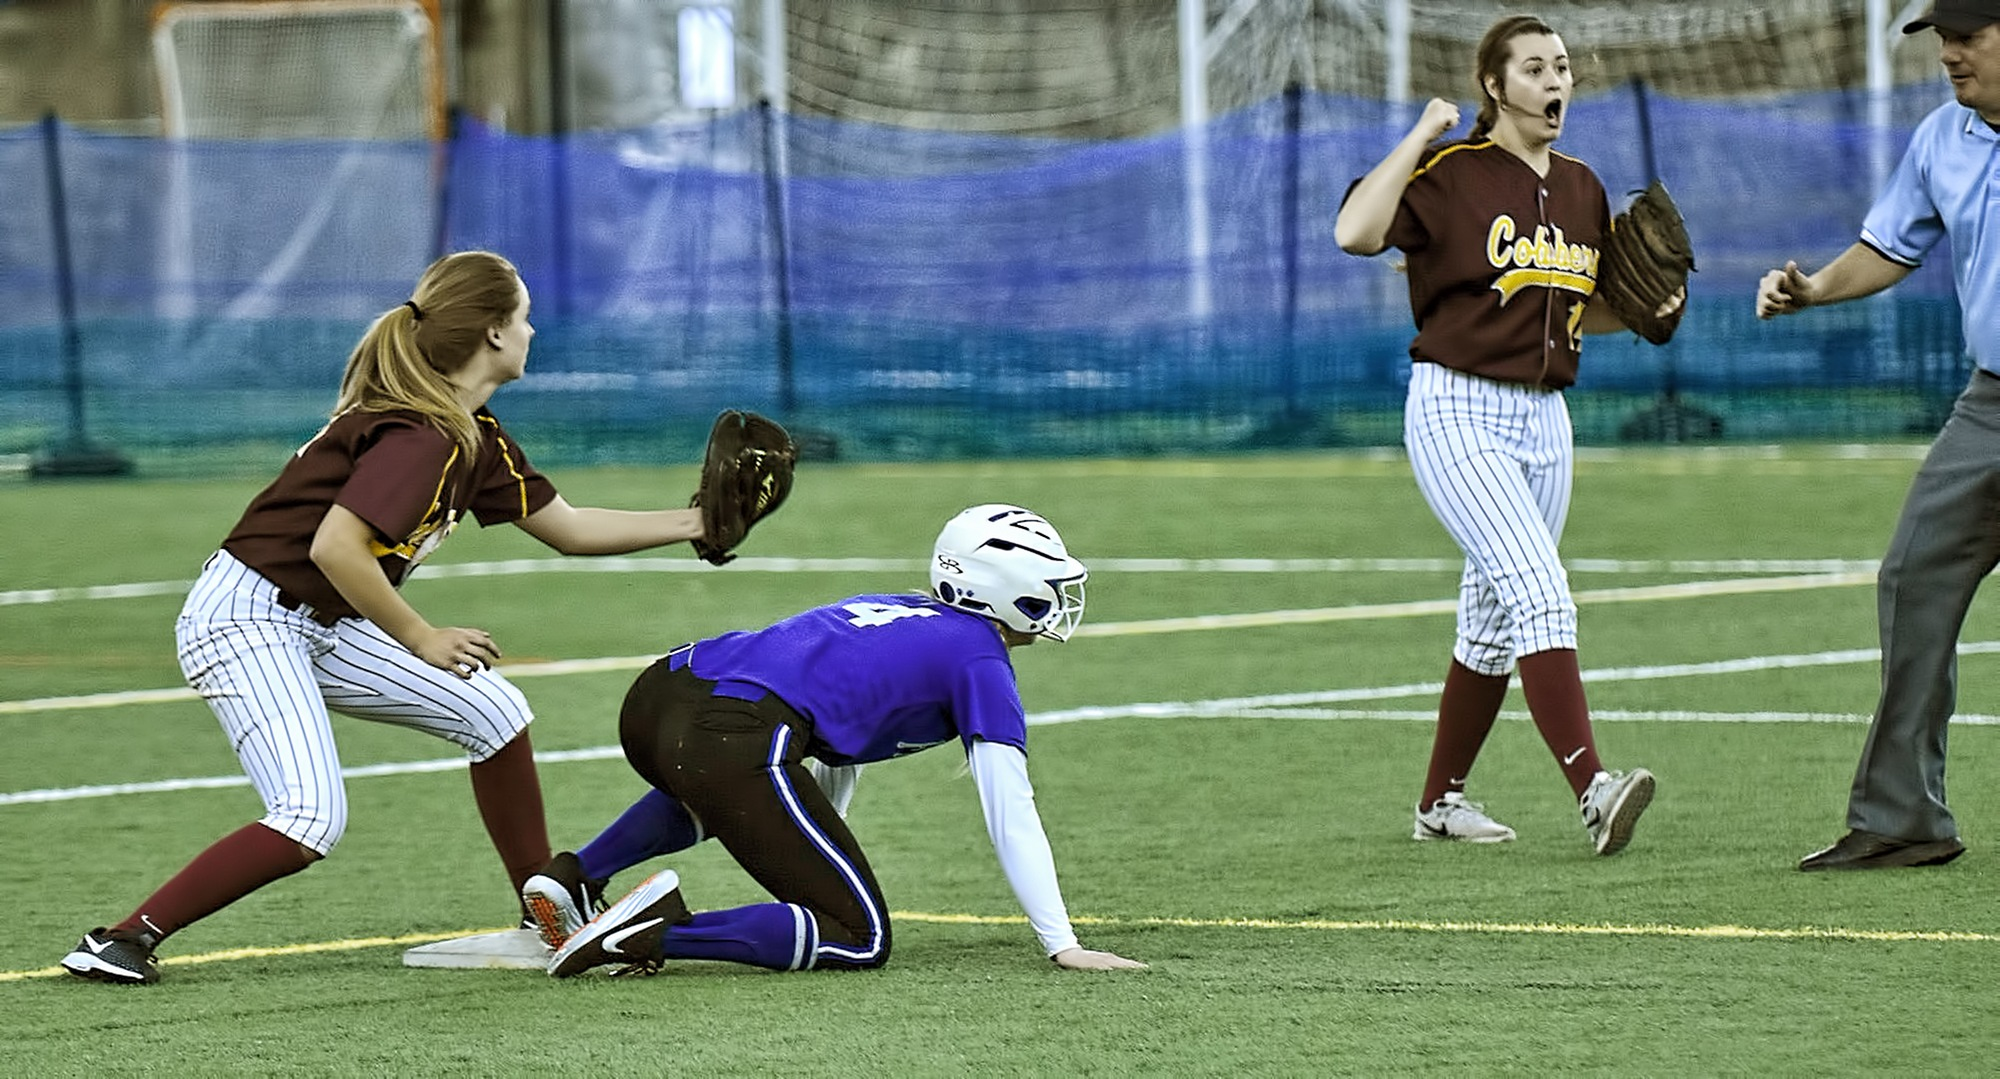 Shortstop Maria Pake show the umpire the ball after making a tag on a would-be stolen base attempt in the Cobbers' first game with Finlandia. Second baseman Kate Wensloff is helping the umpire make the call.